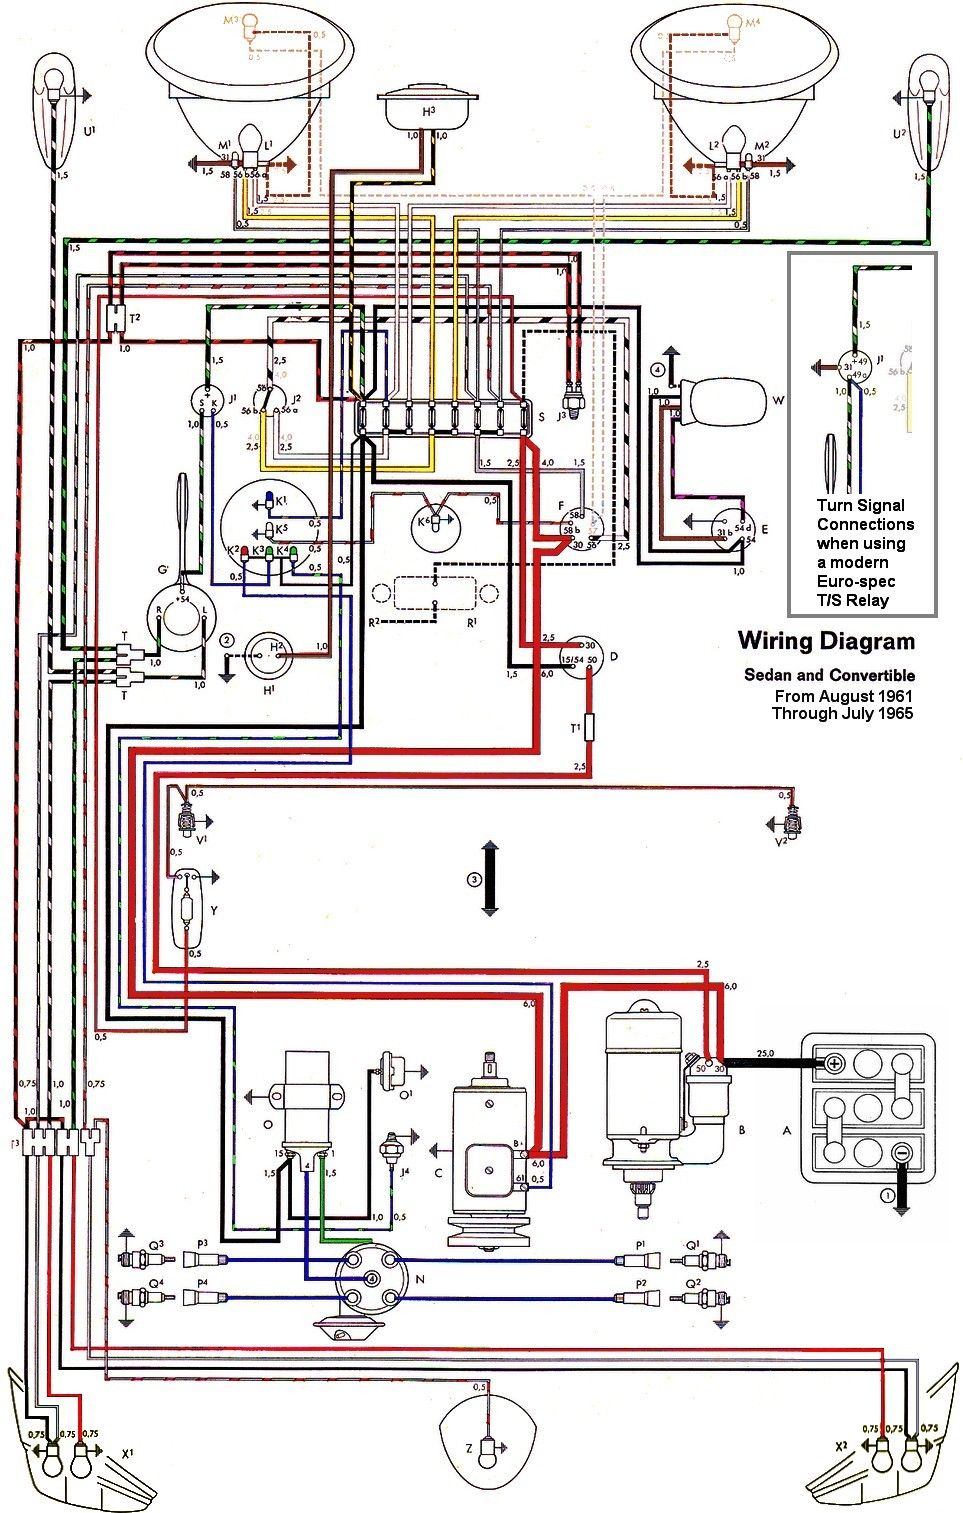 wiring diagram vw beetle sedan and convertible 1961 1965 vw 1965 lincoln wiring diagram 1965 vw [ 963 x 1513 Pixel ]